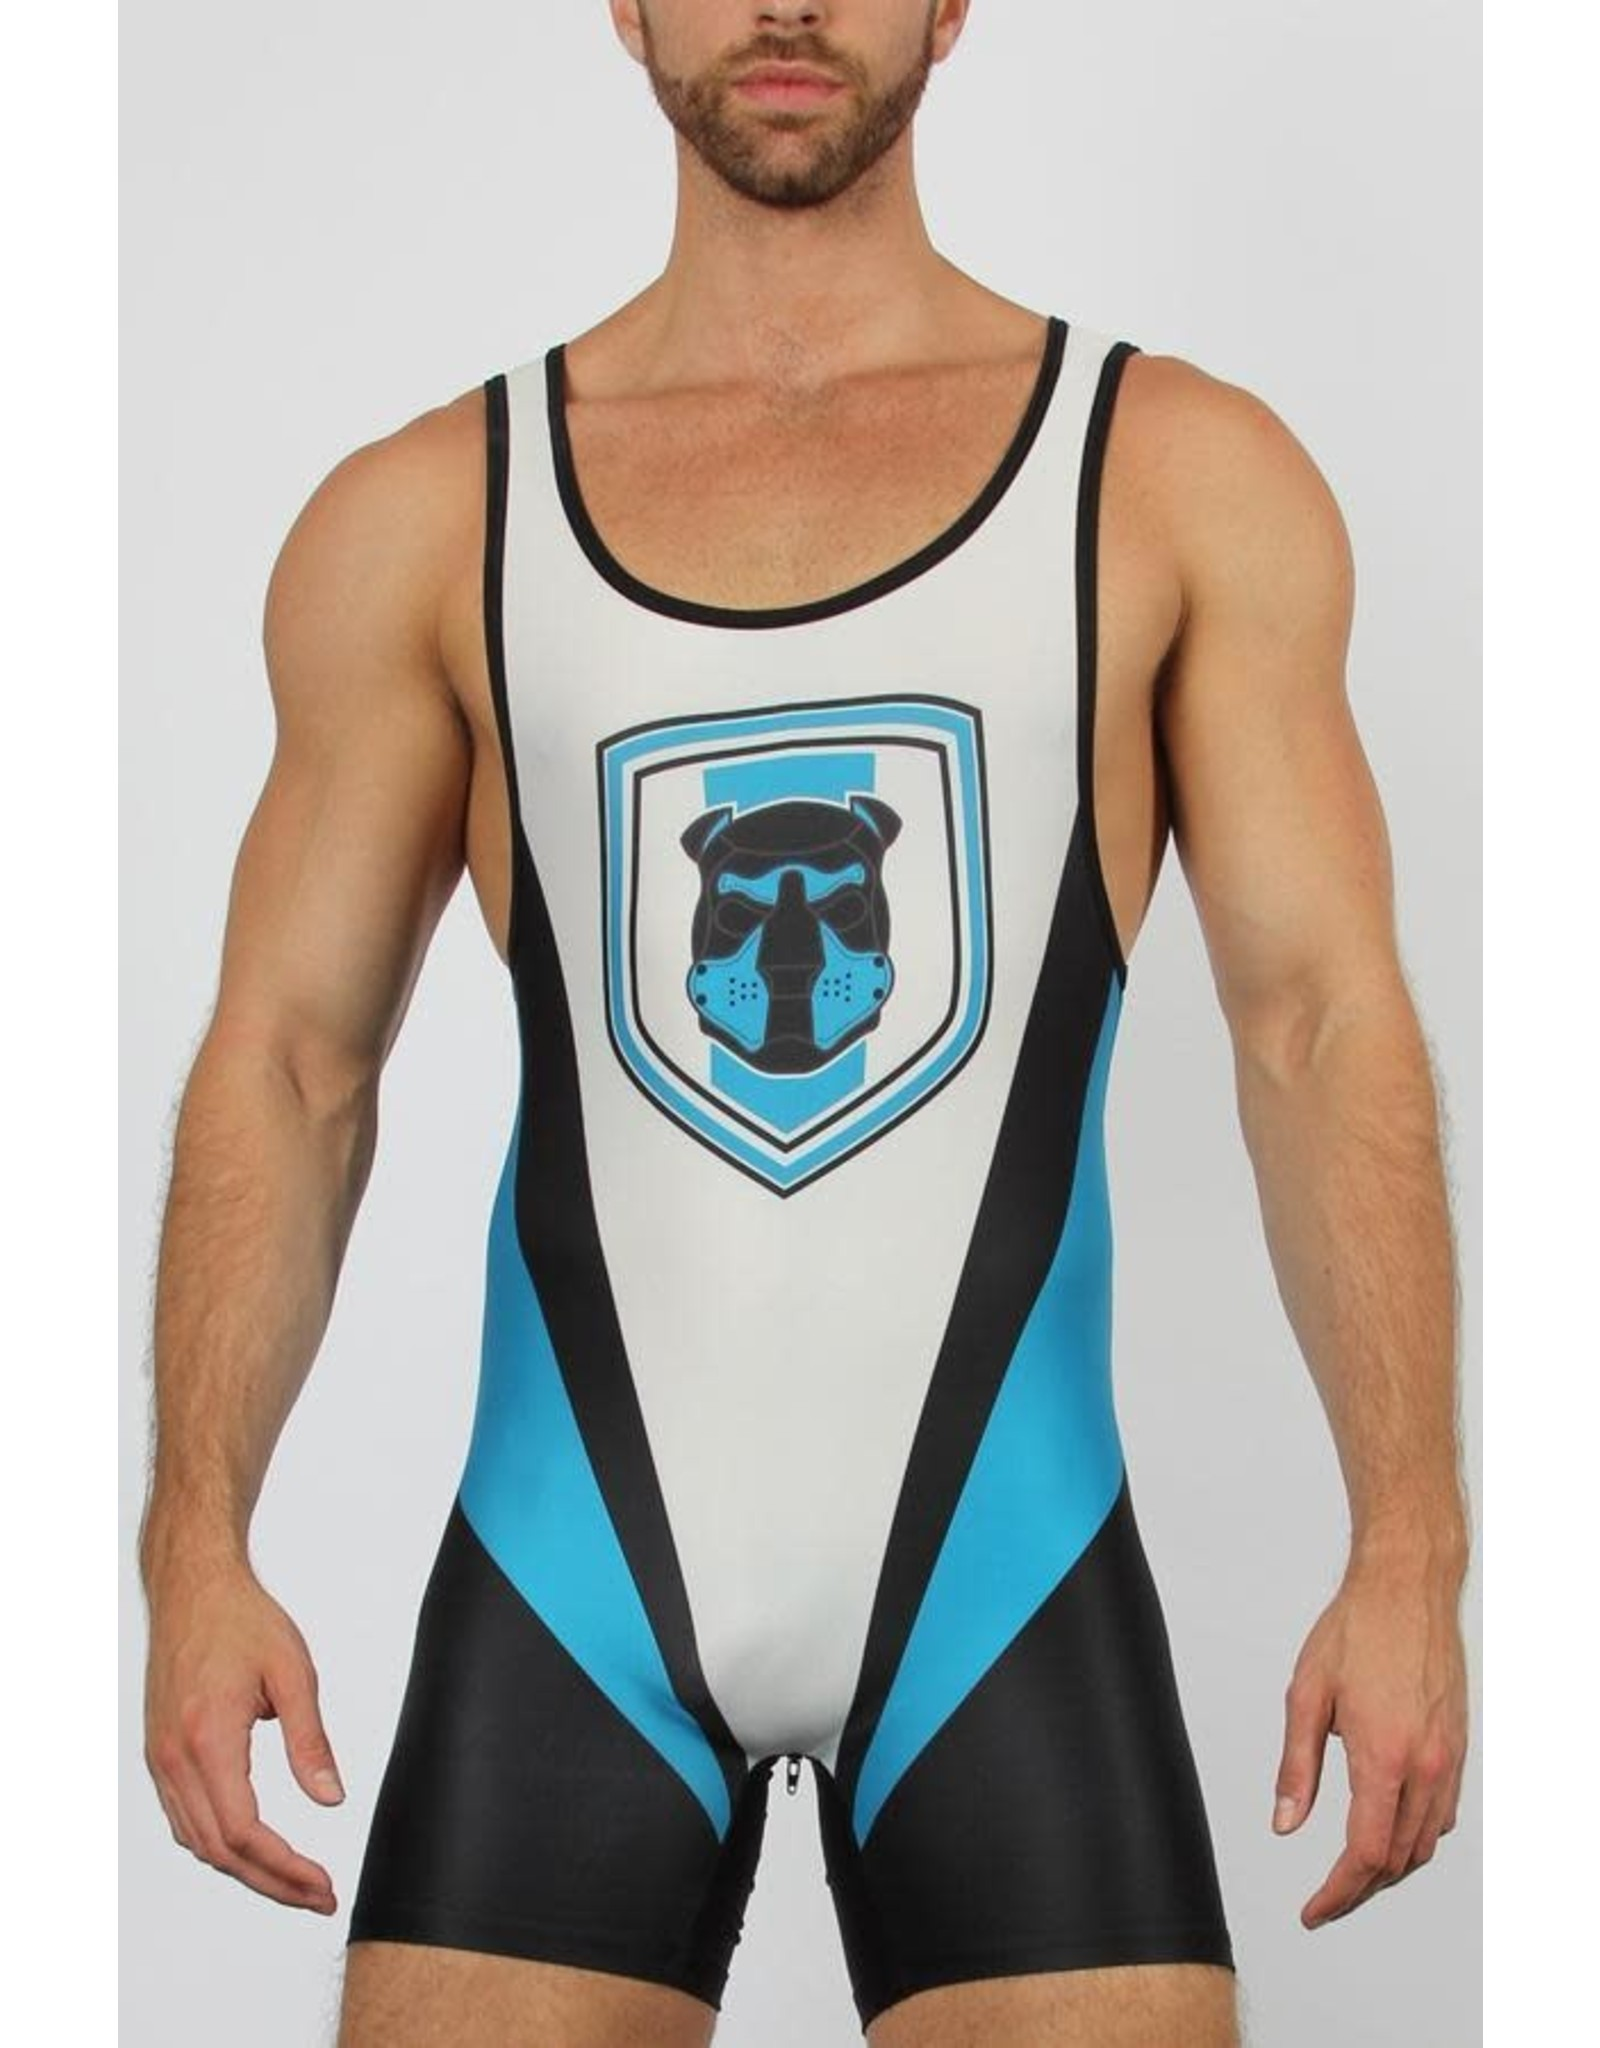 Cellblock13 Cellblock13 Kennel Club Singlet